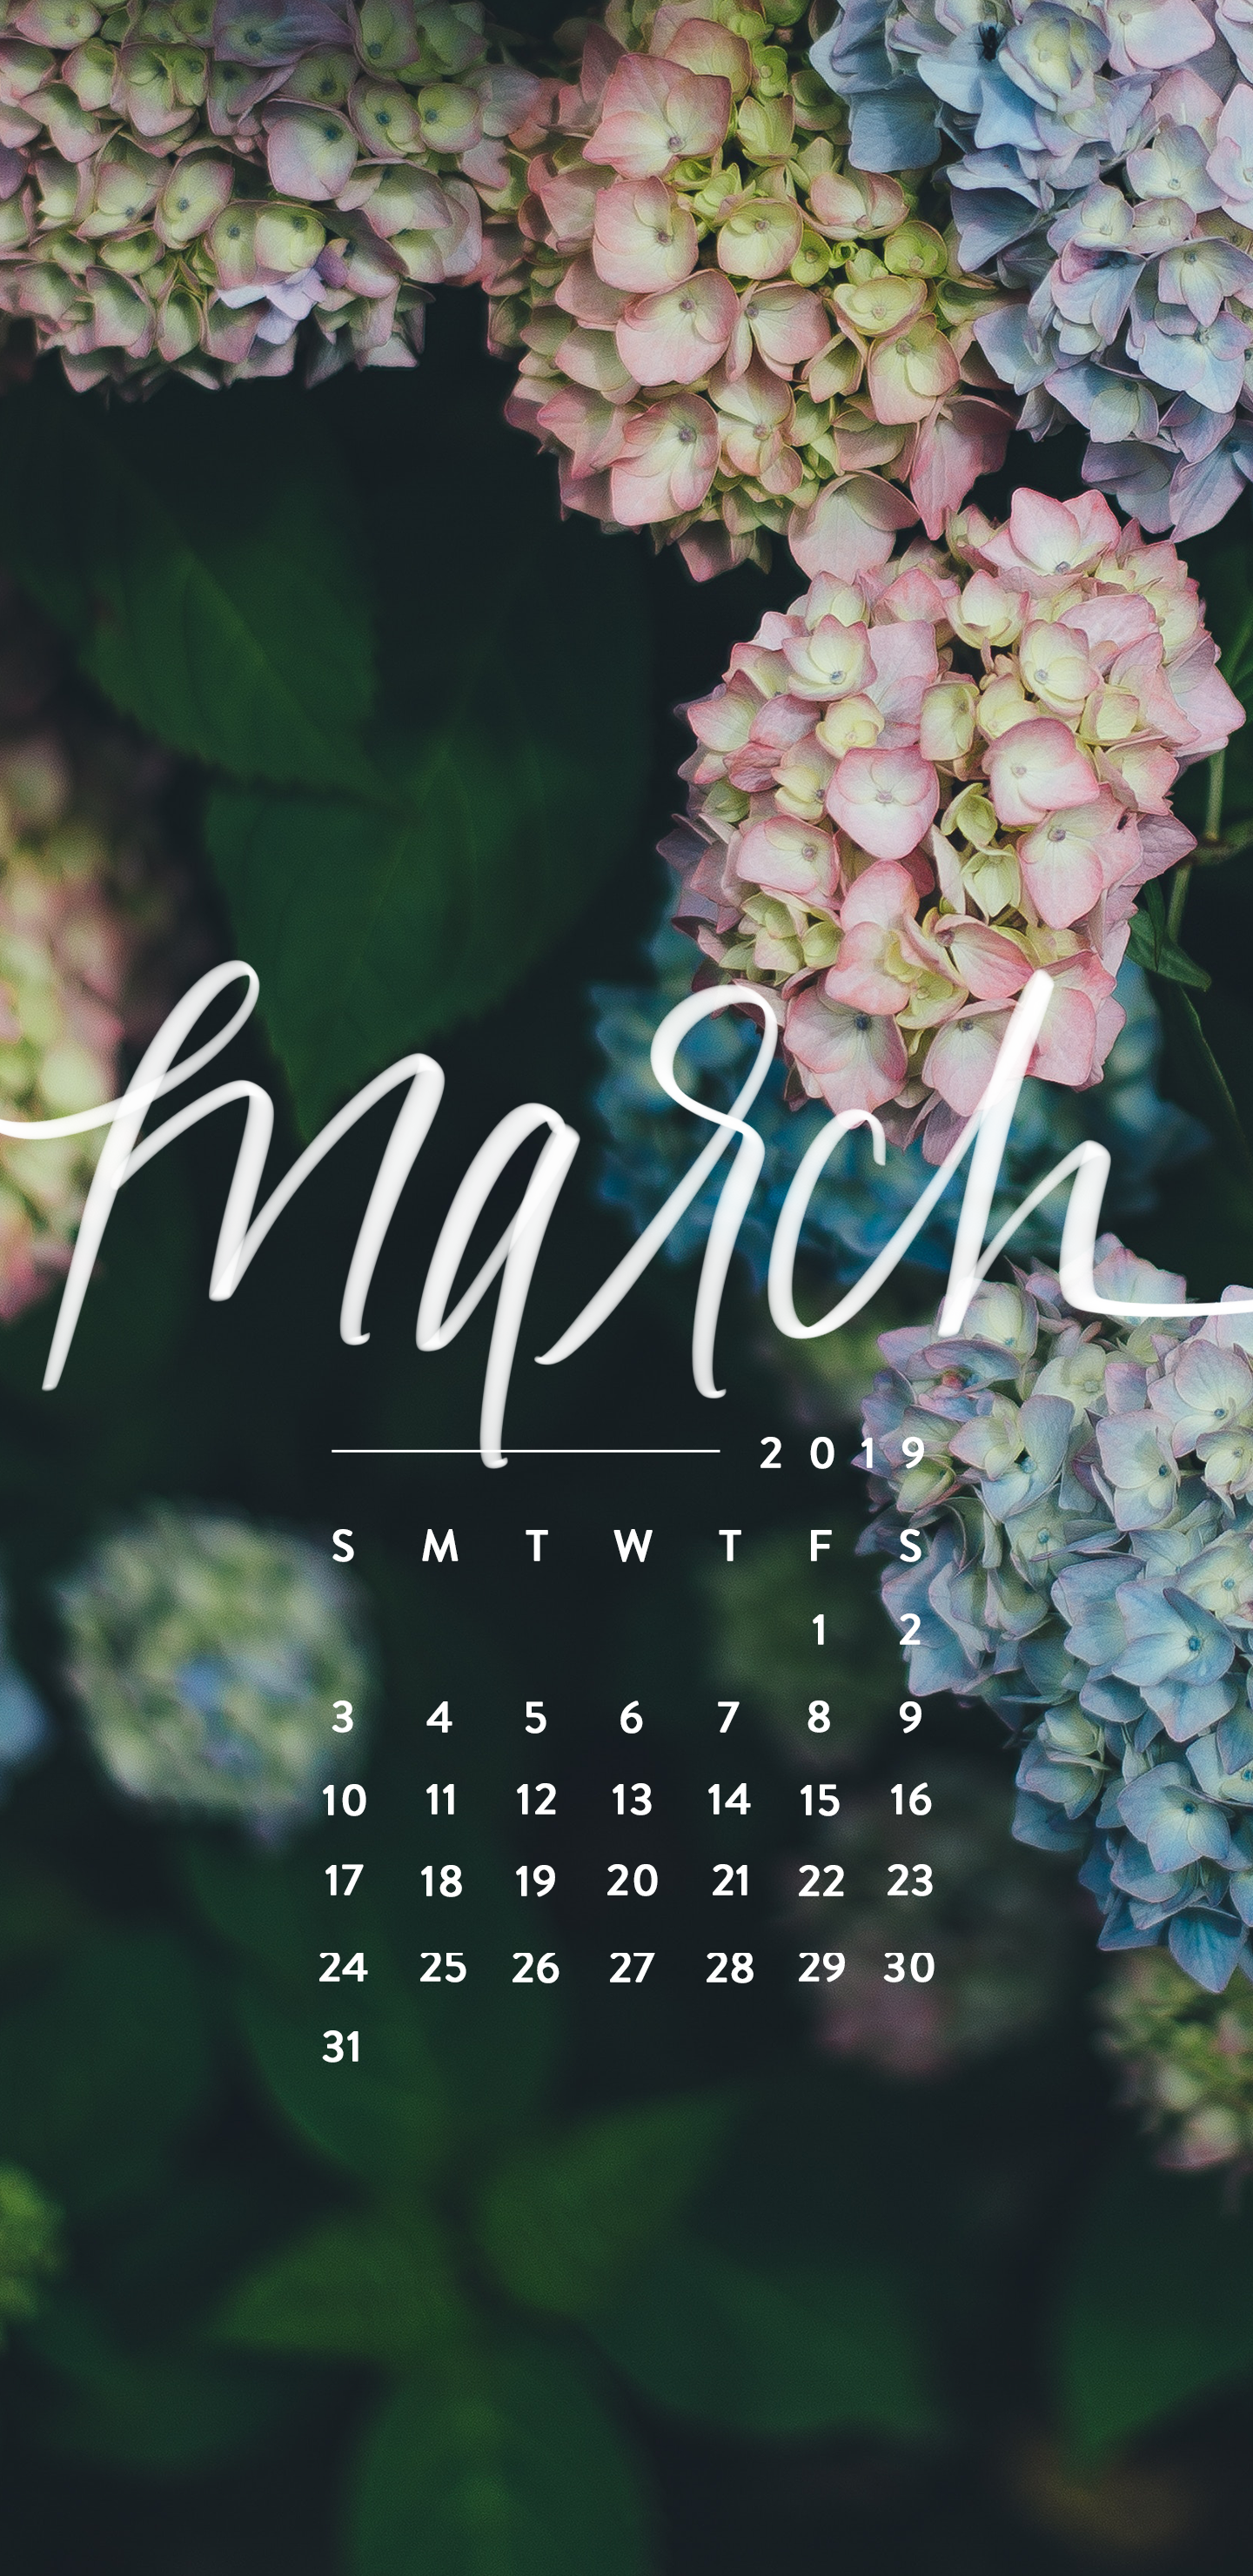 Free Downloadable Tech Backgrounds For March 2019 The Everygirl